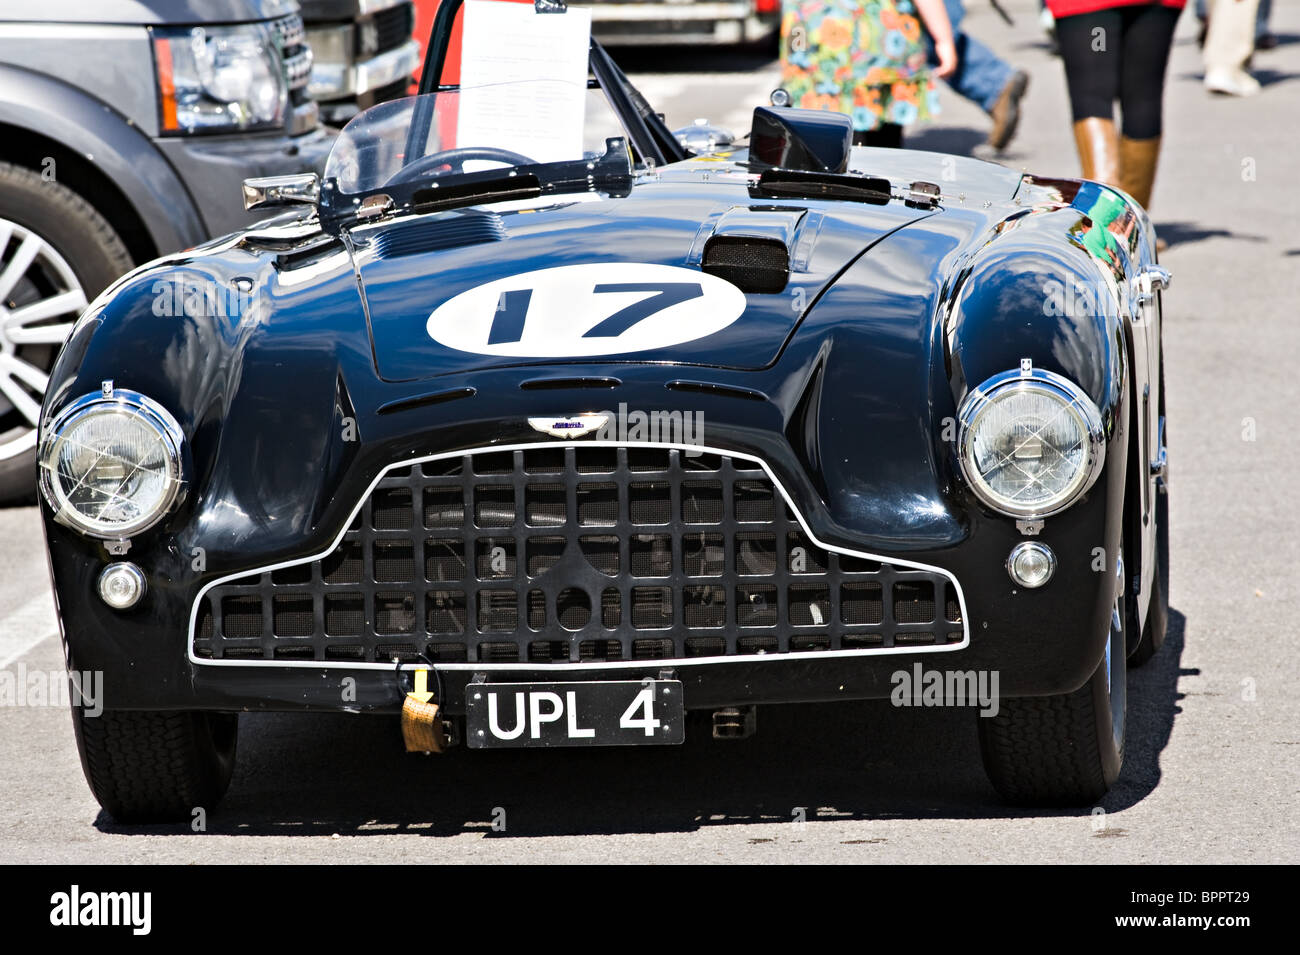 aston martin db3 stock photos aston martin db3 stock images alamy. Black Bedroom Furniture Sets. Home Design Ideas